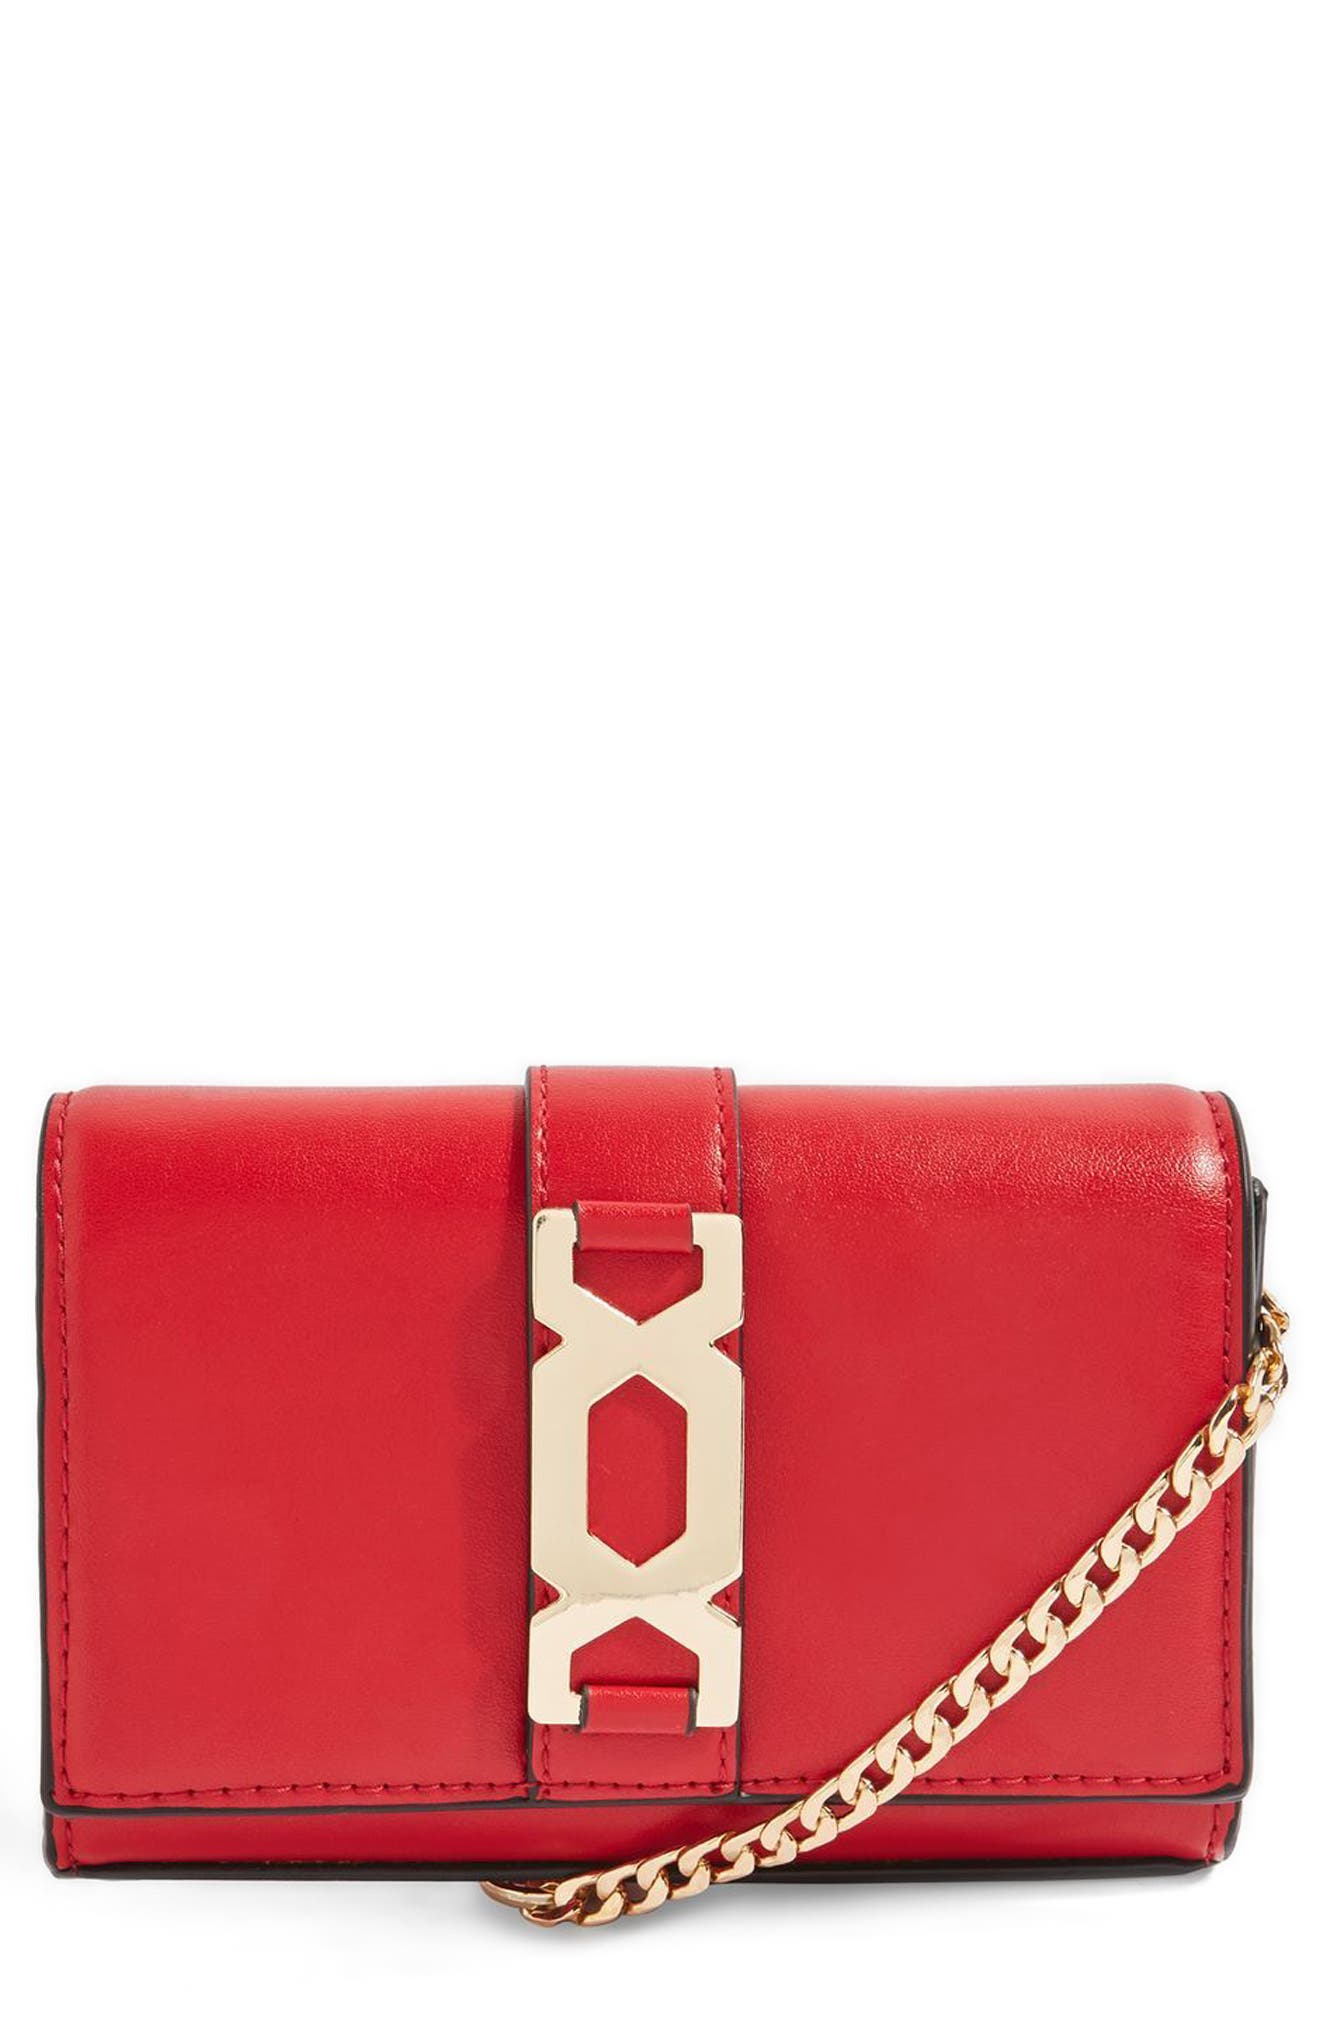 Rome Hex Hardware Crossbody Bag,                         Main,                         color, Red